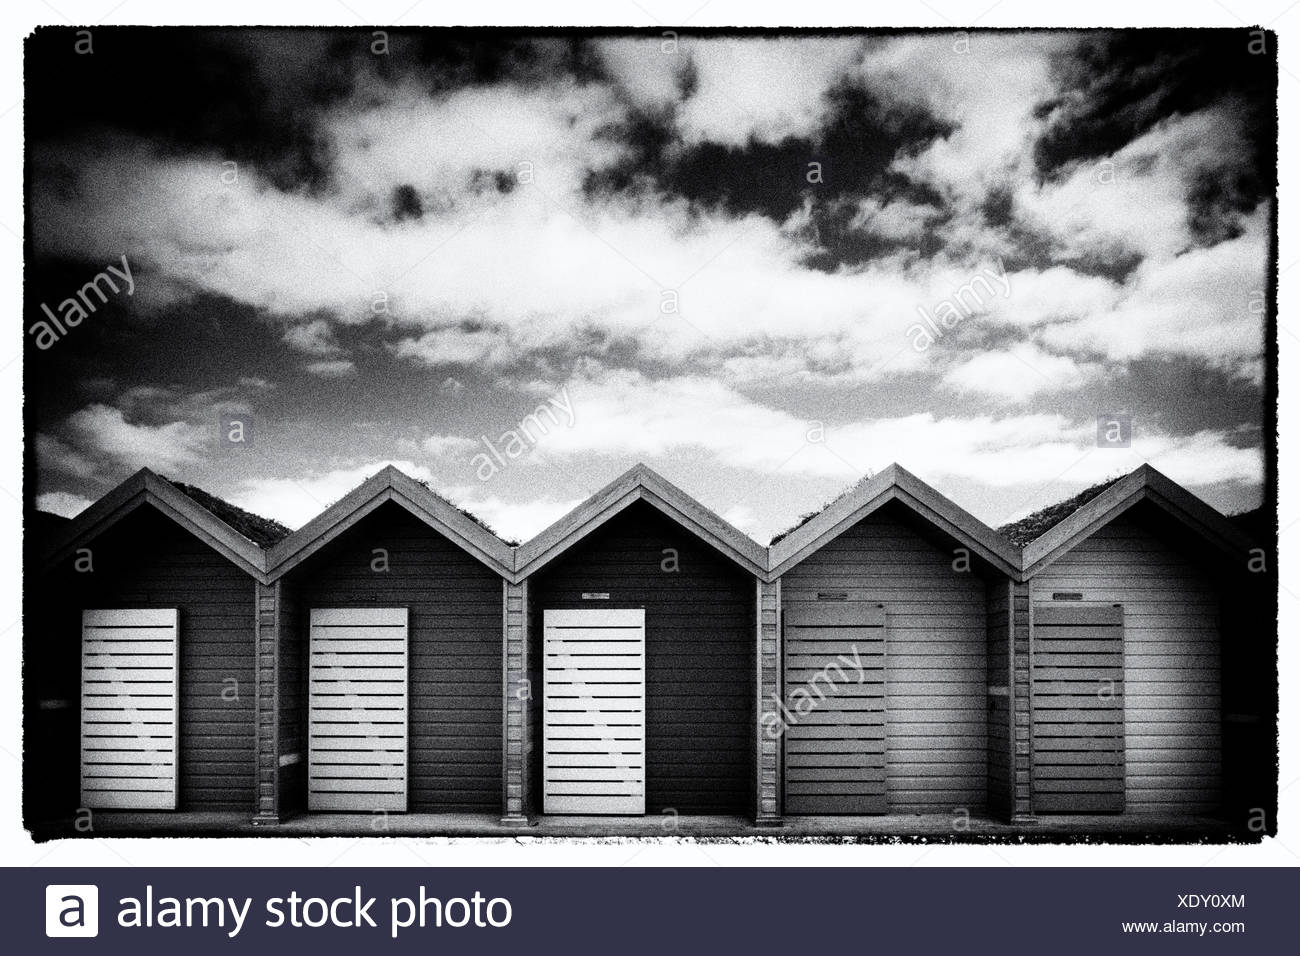 Beach Huts in a row at Blyth, Northumberland, England - Stock Image